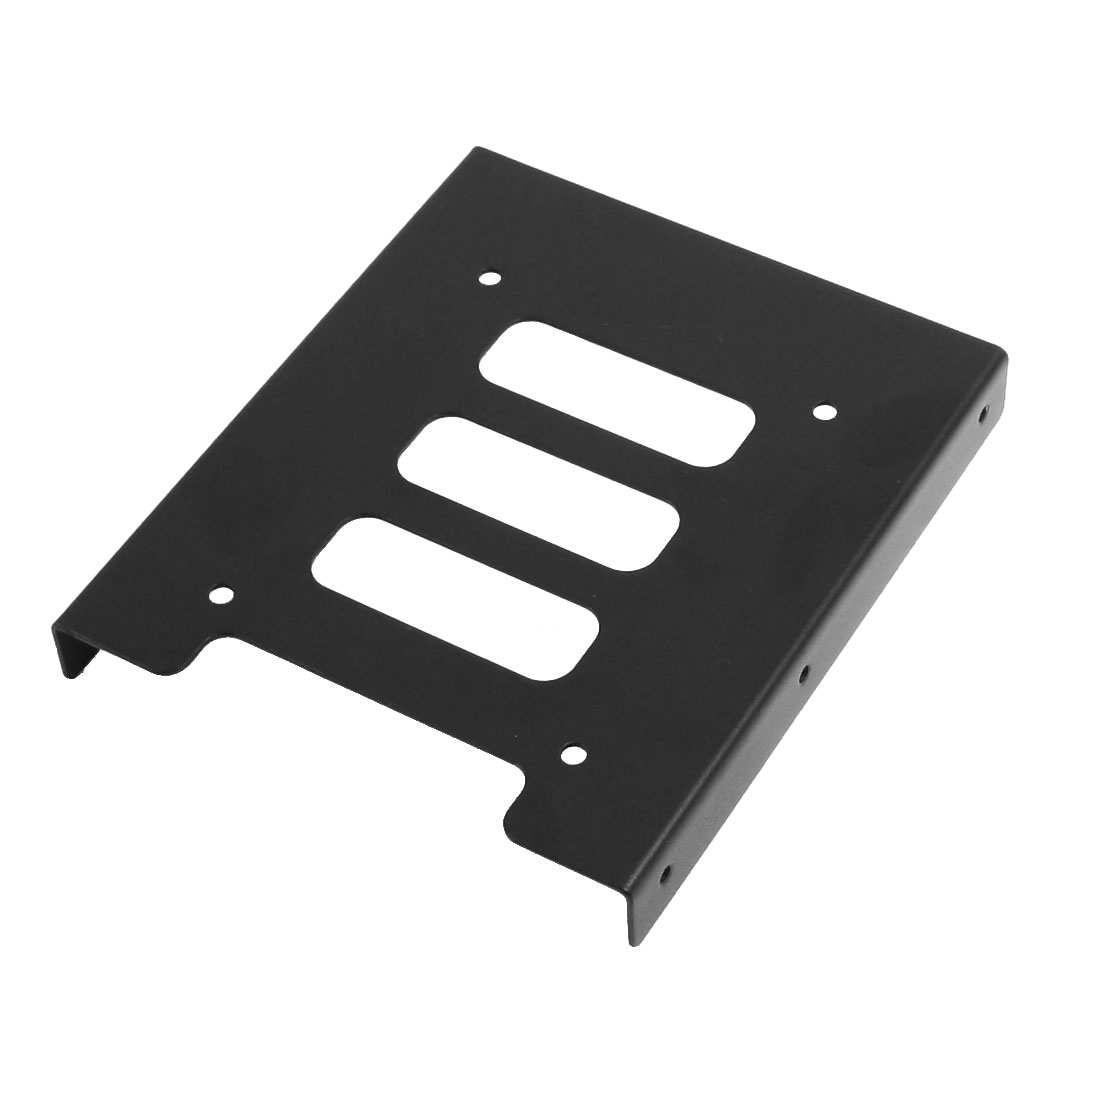 "Black Metal 2.5"" to 3.5"" SSD Mounting Adapter Bracket Hard Drive Holder"